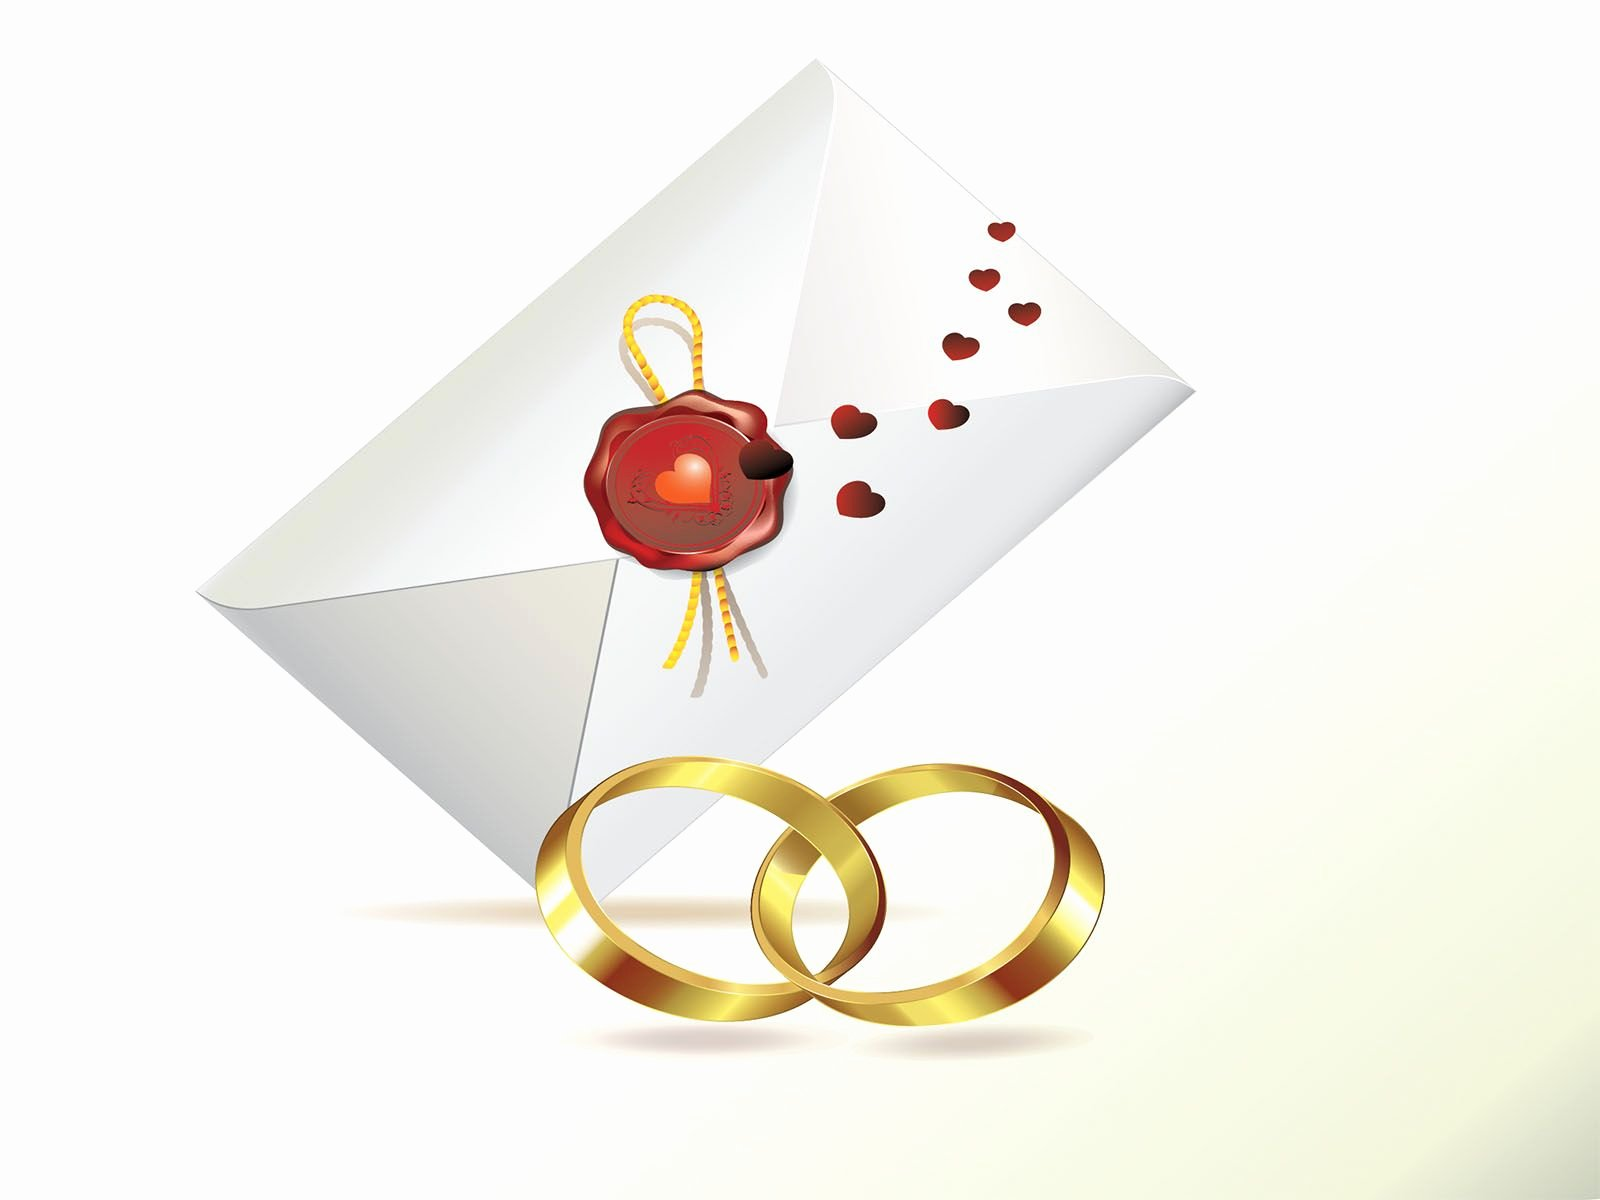 Wedding Invitation and Rings Powerpoint Templates